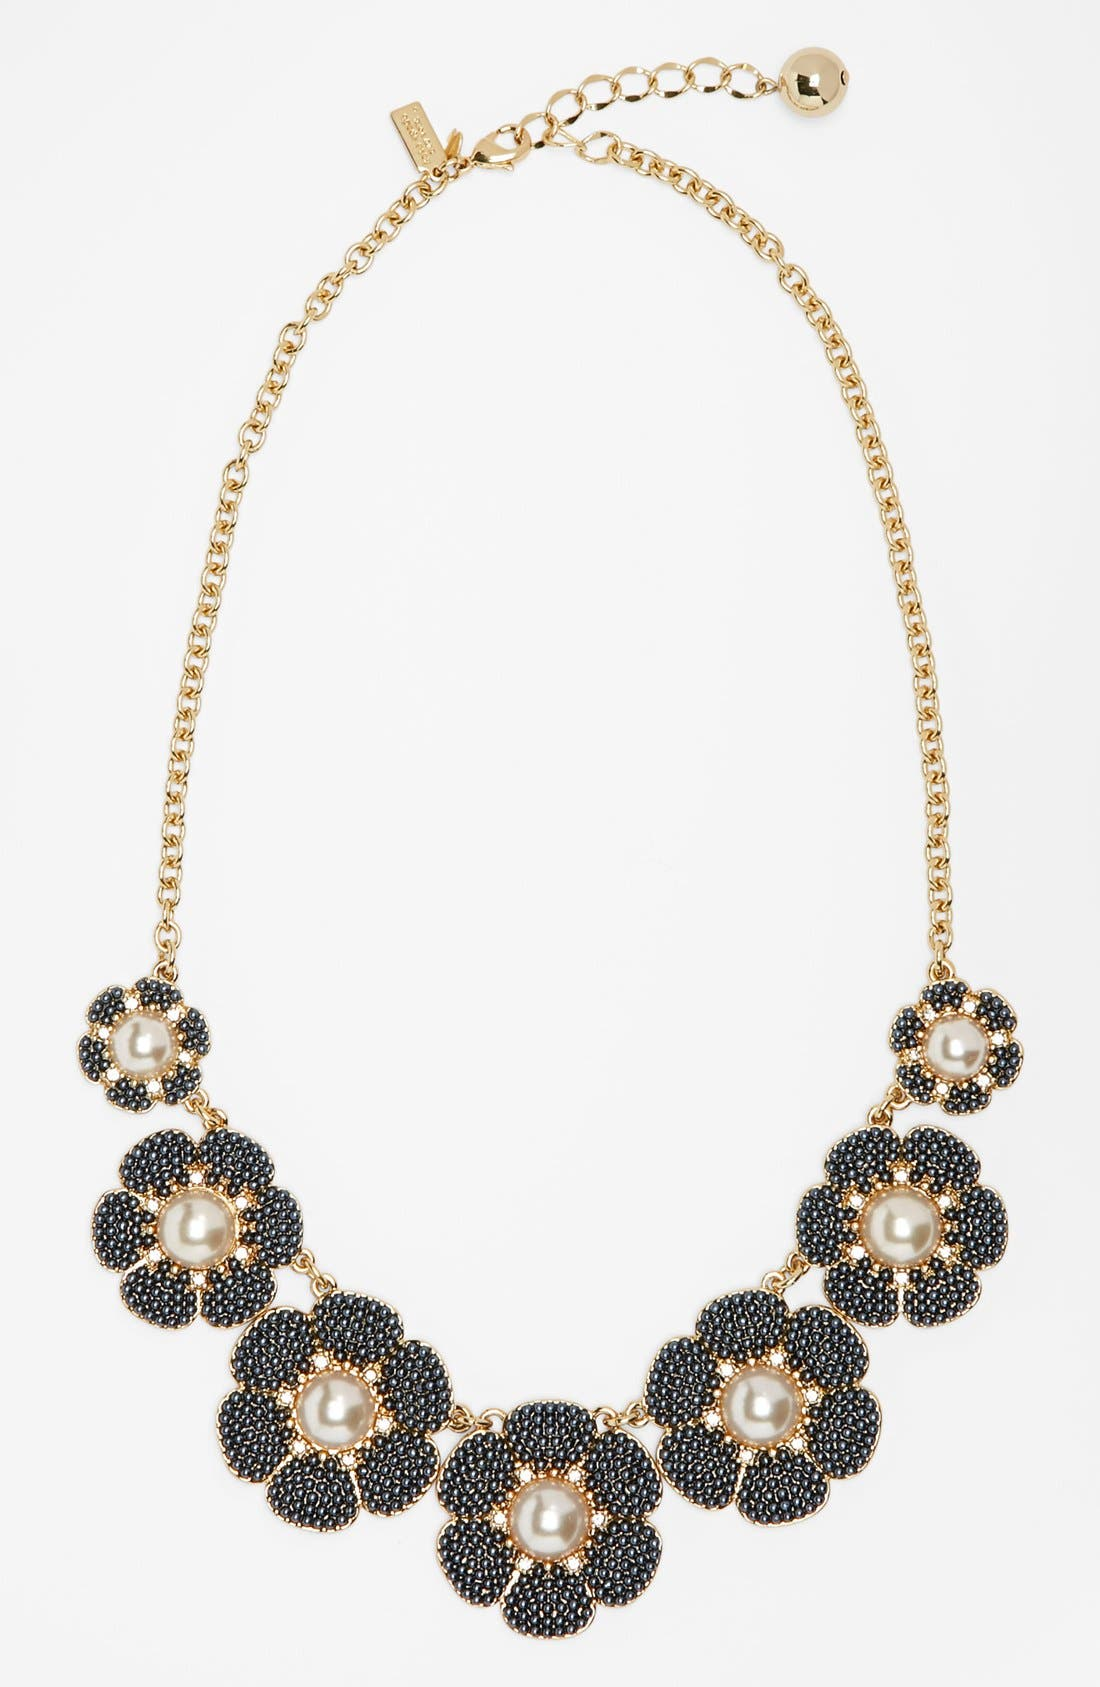 Main Image - kate spade new york 'park floral' faux pearl bib necklace